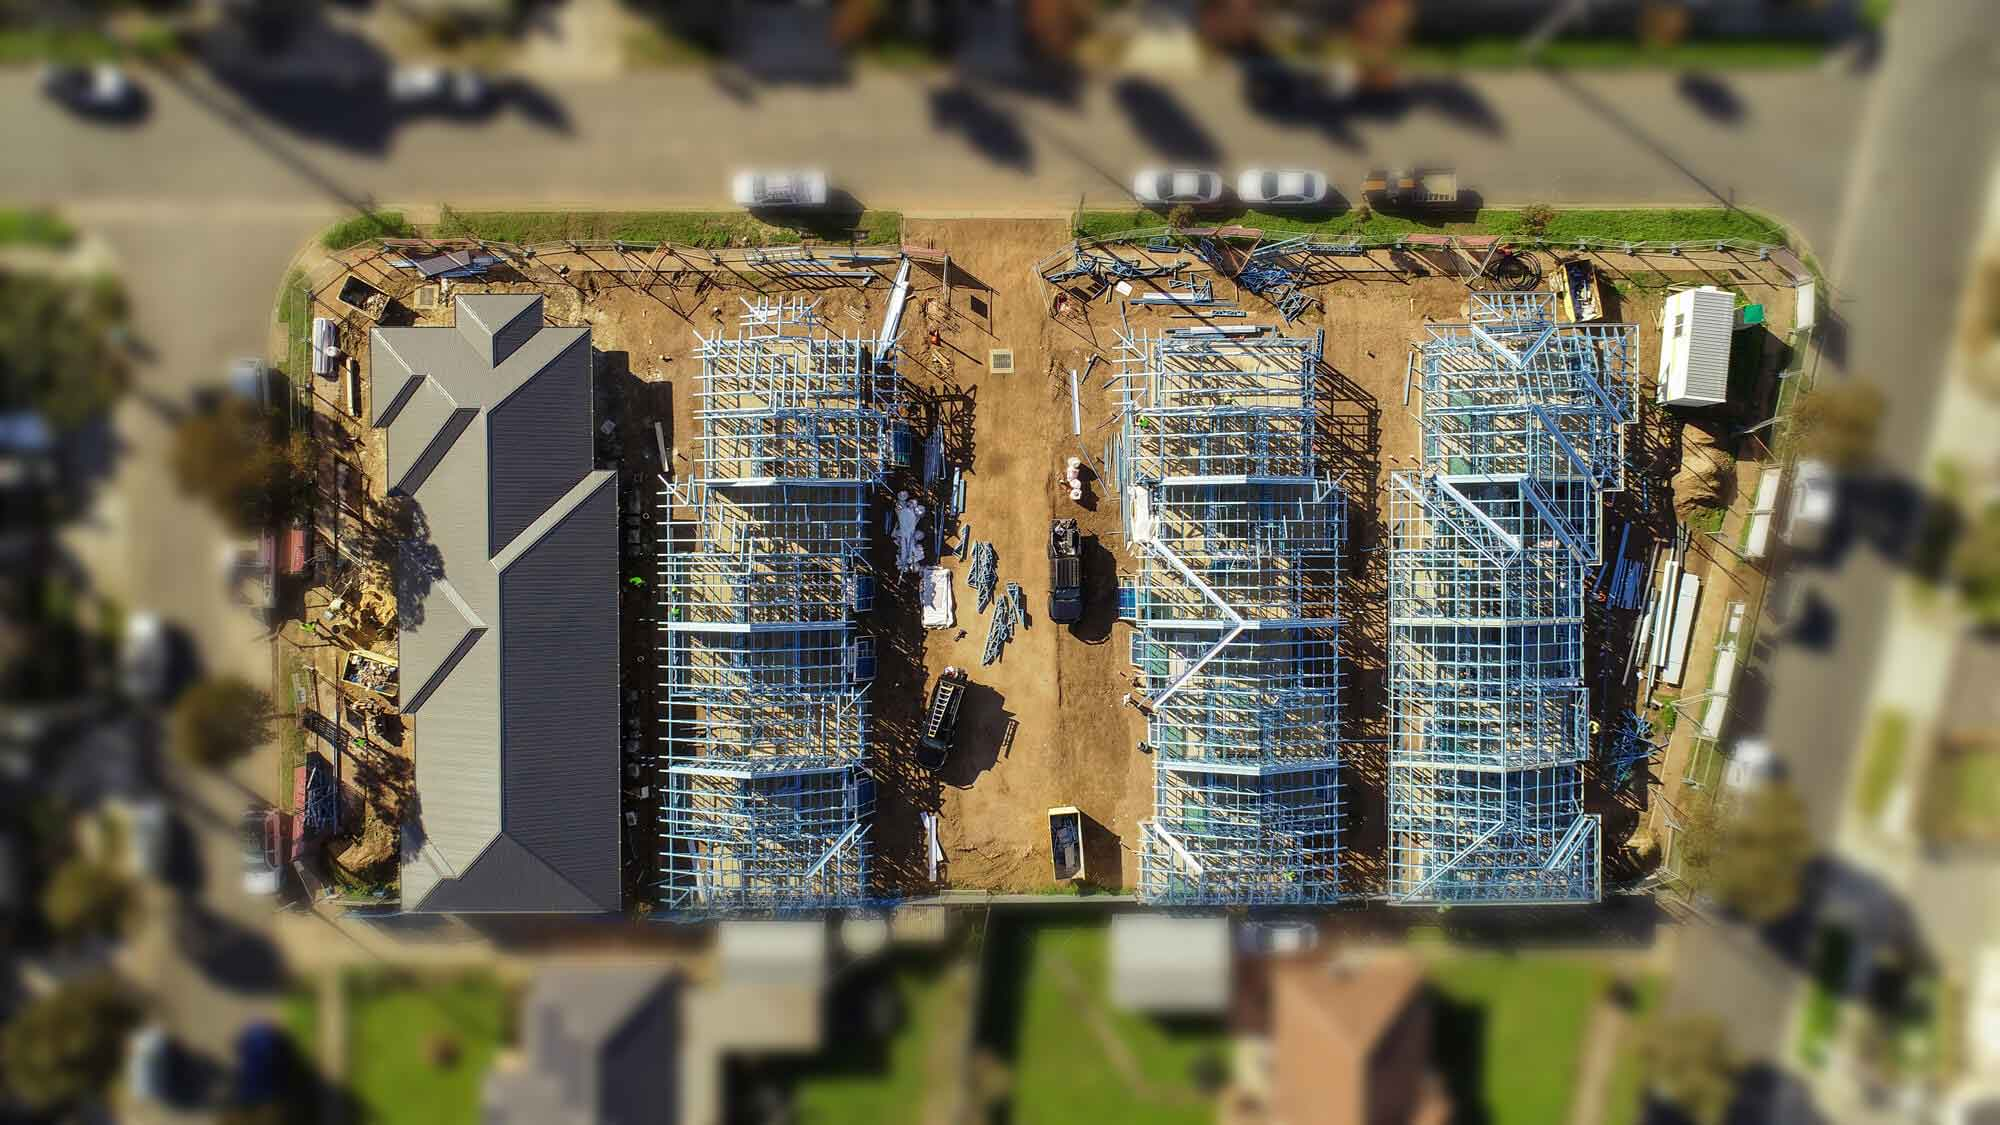 Aerial view of Normus Urban Projects construction site